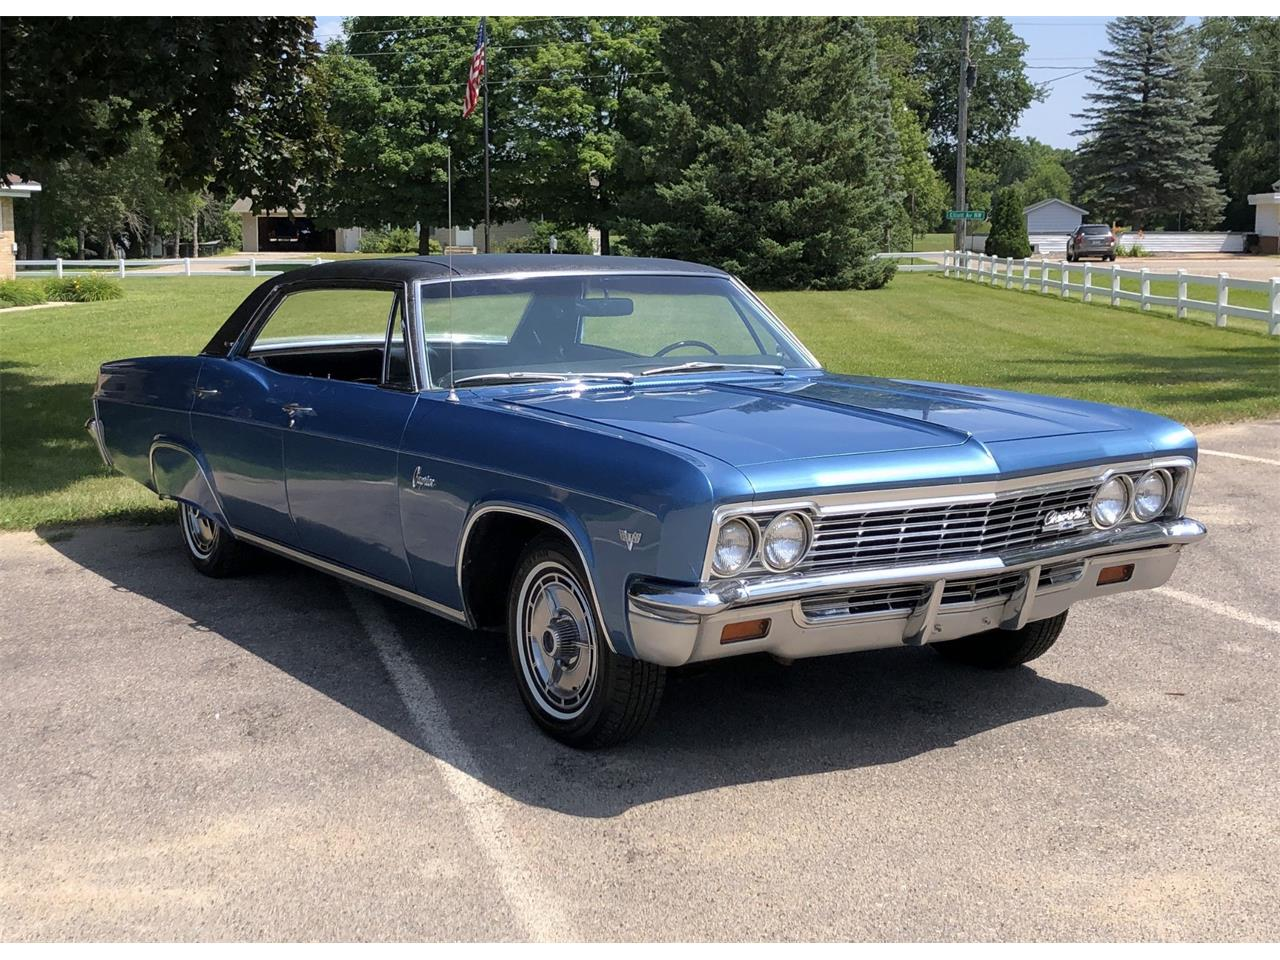 1966 Chevrolet Caprice (CC-1241835) for sale in Maple Lake, Minnesota